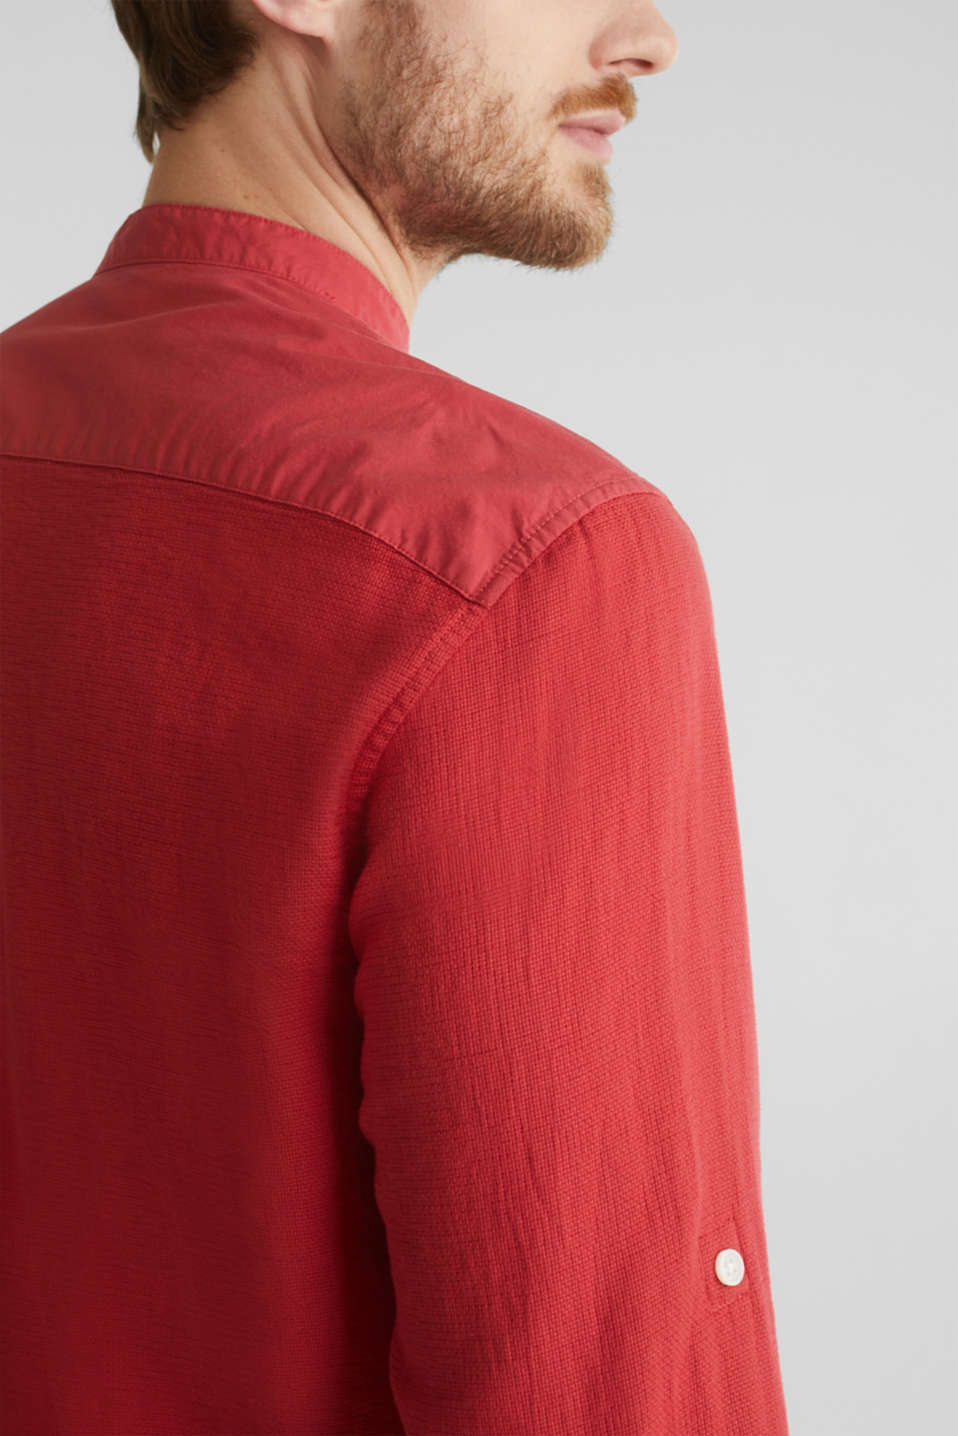 Textured shirt made of 100% organic, ORANGE RED 5, detail image number 2